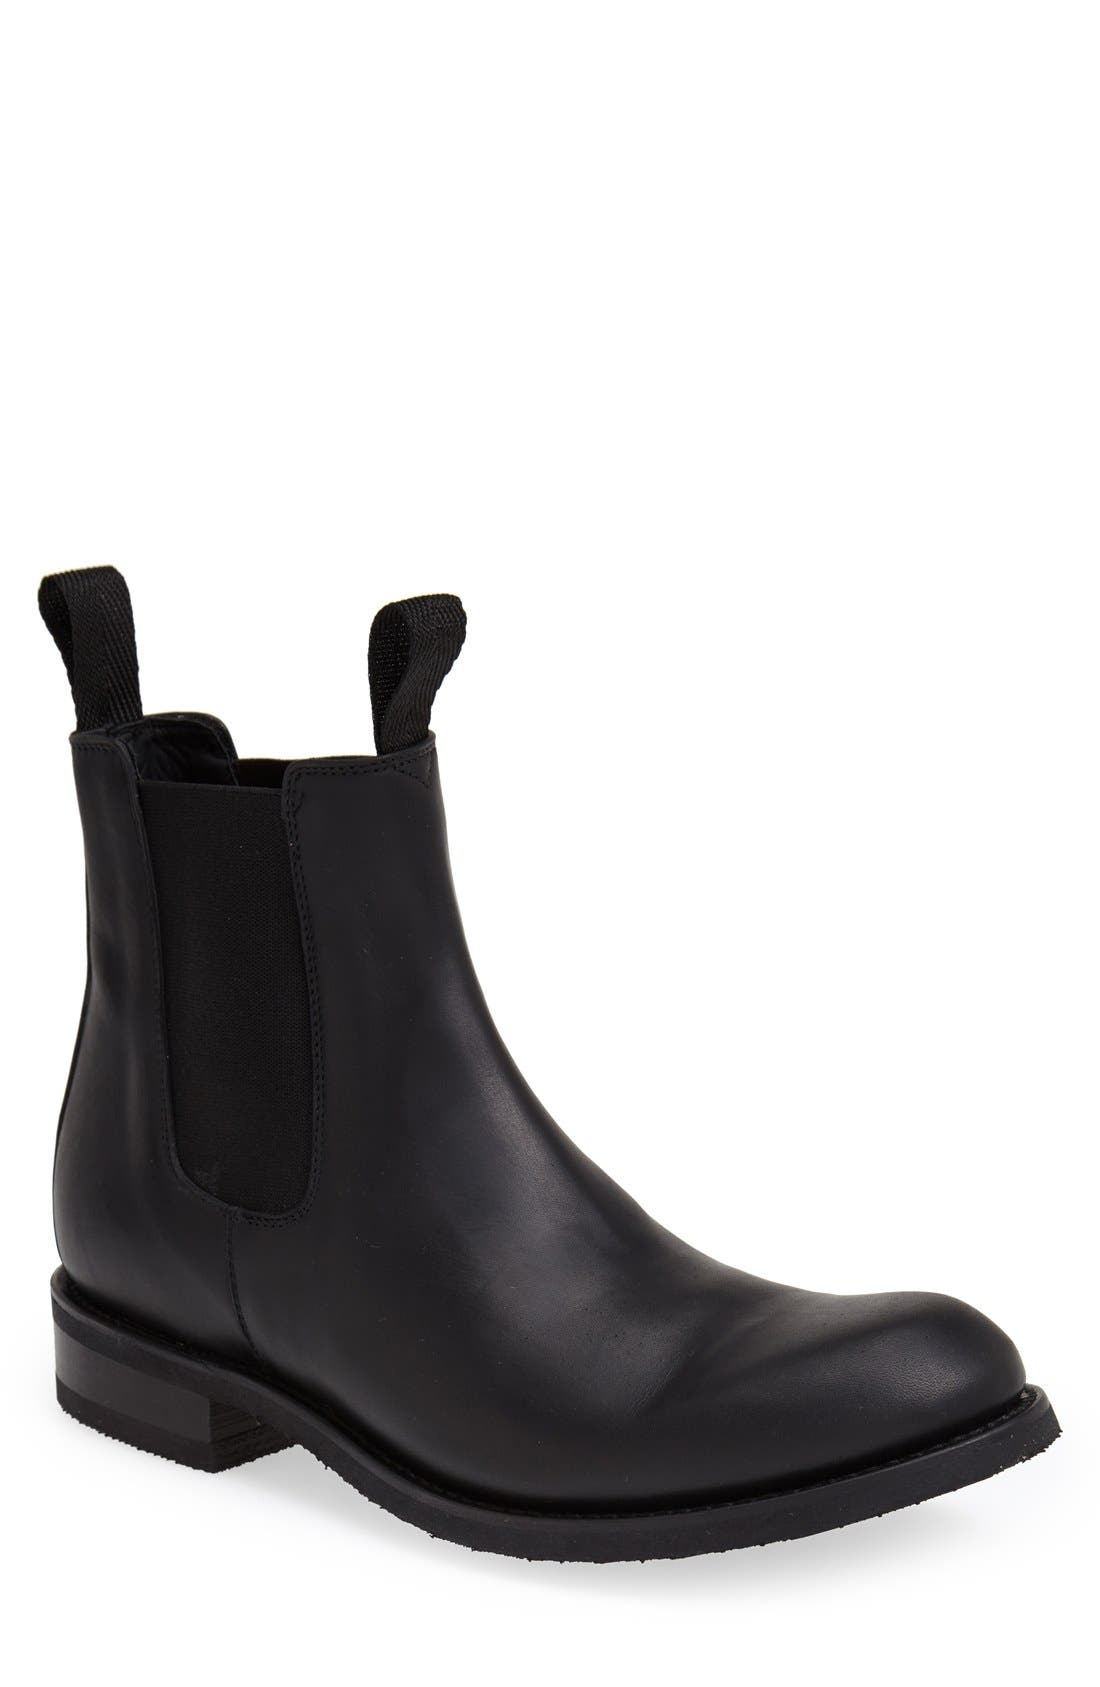 Main Image - Sendra 'Al' Chelsea Boot (Men)